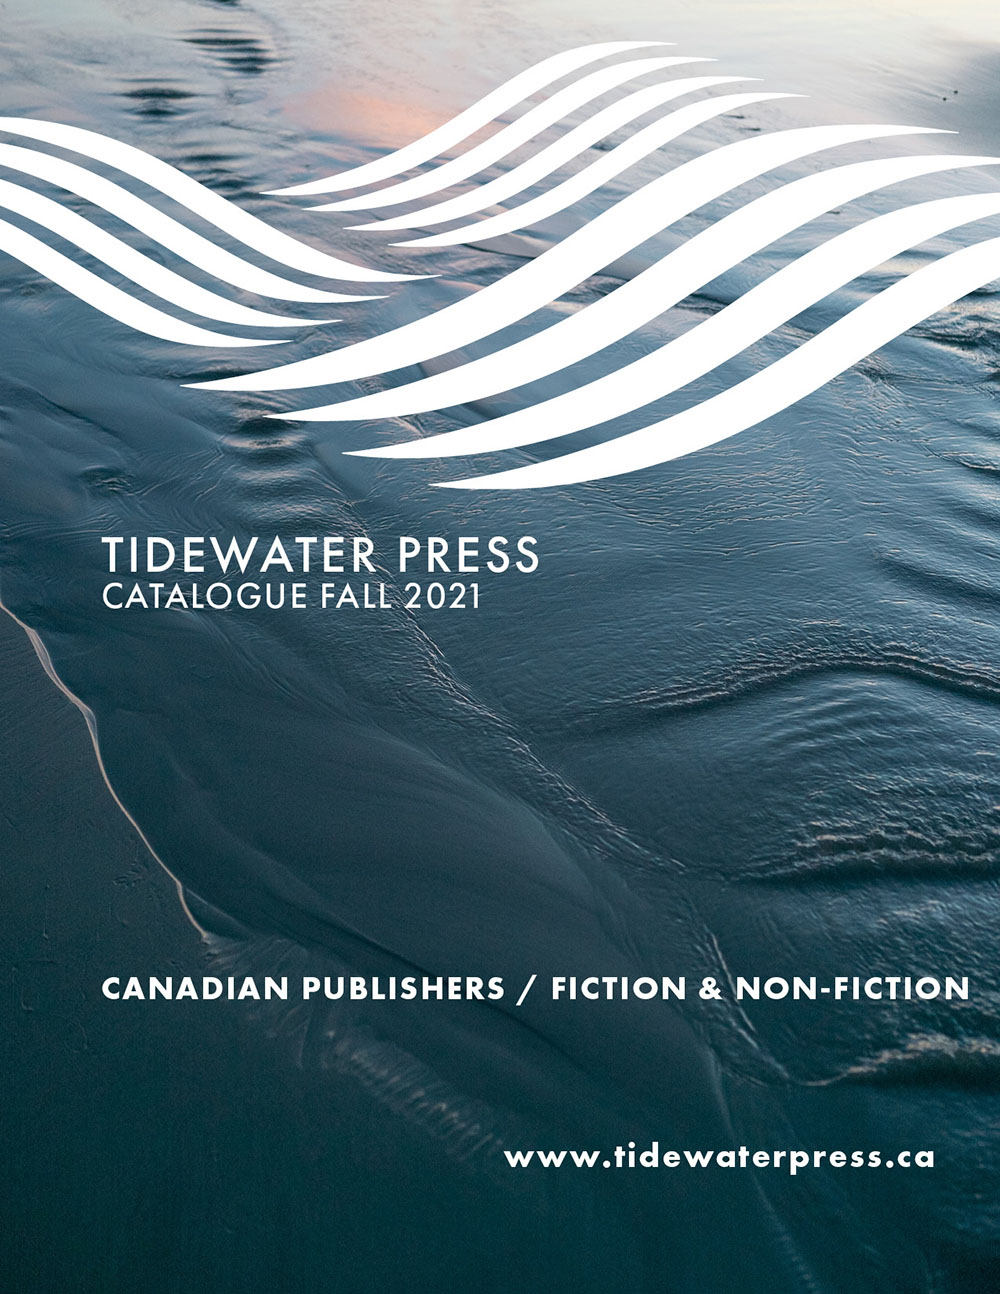 Tidewater Press Fall 2021 Catalogue cover